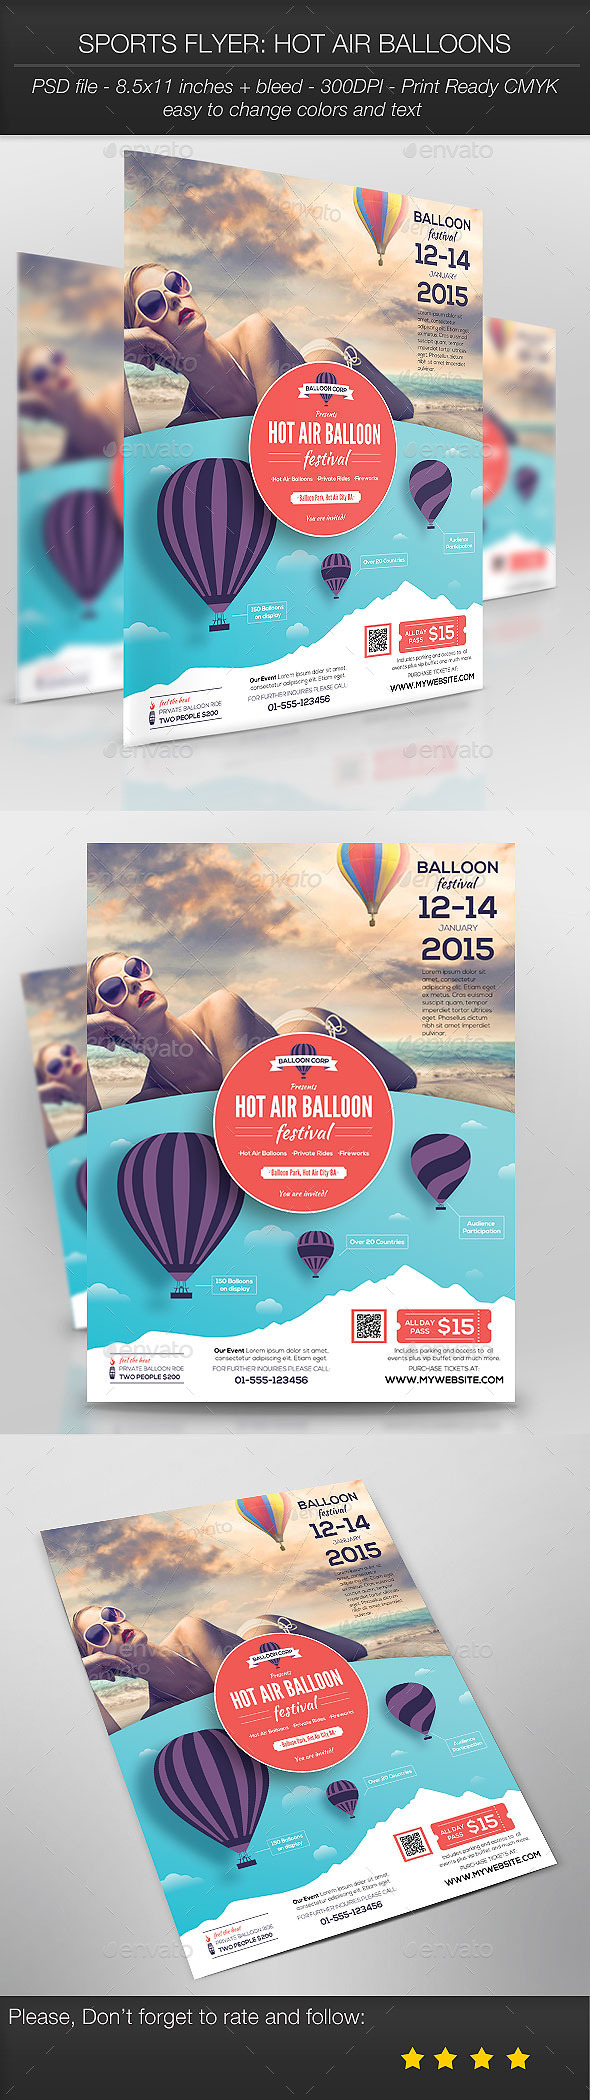 GraphicRiver Sports Flyer Hot Air Balloons 9614113